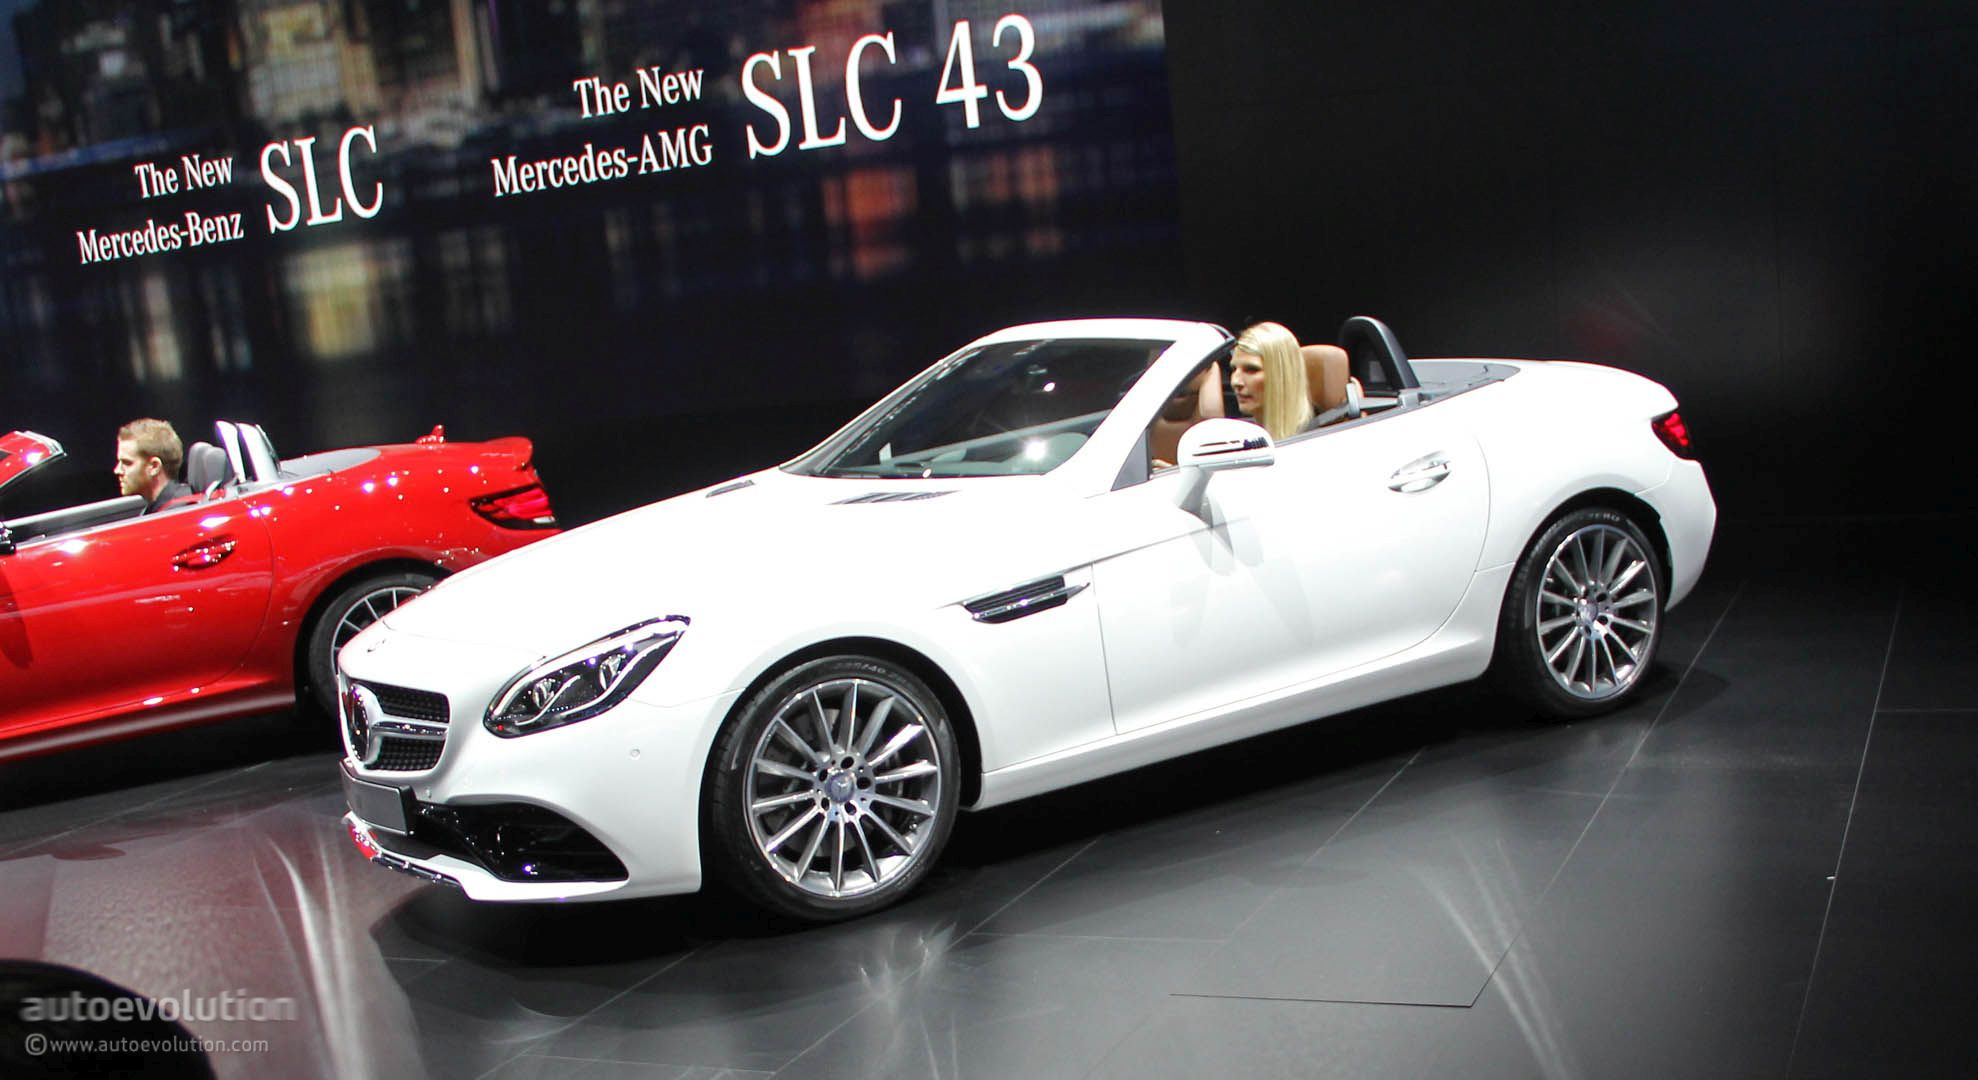 2019 Mercedes-AMG SLC 43 Adds More Standard Equipment, Has ...